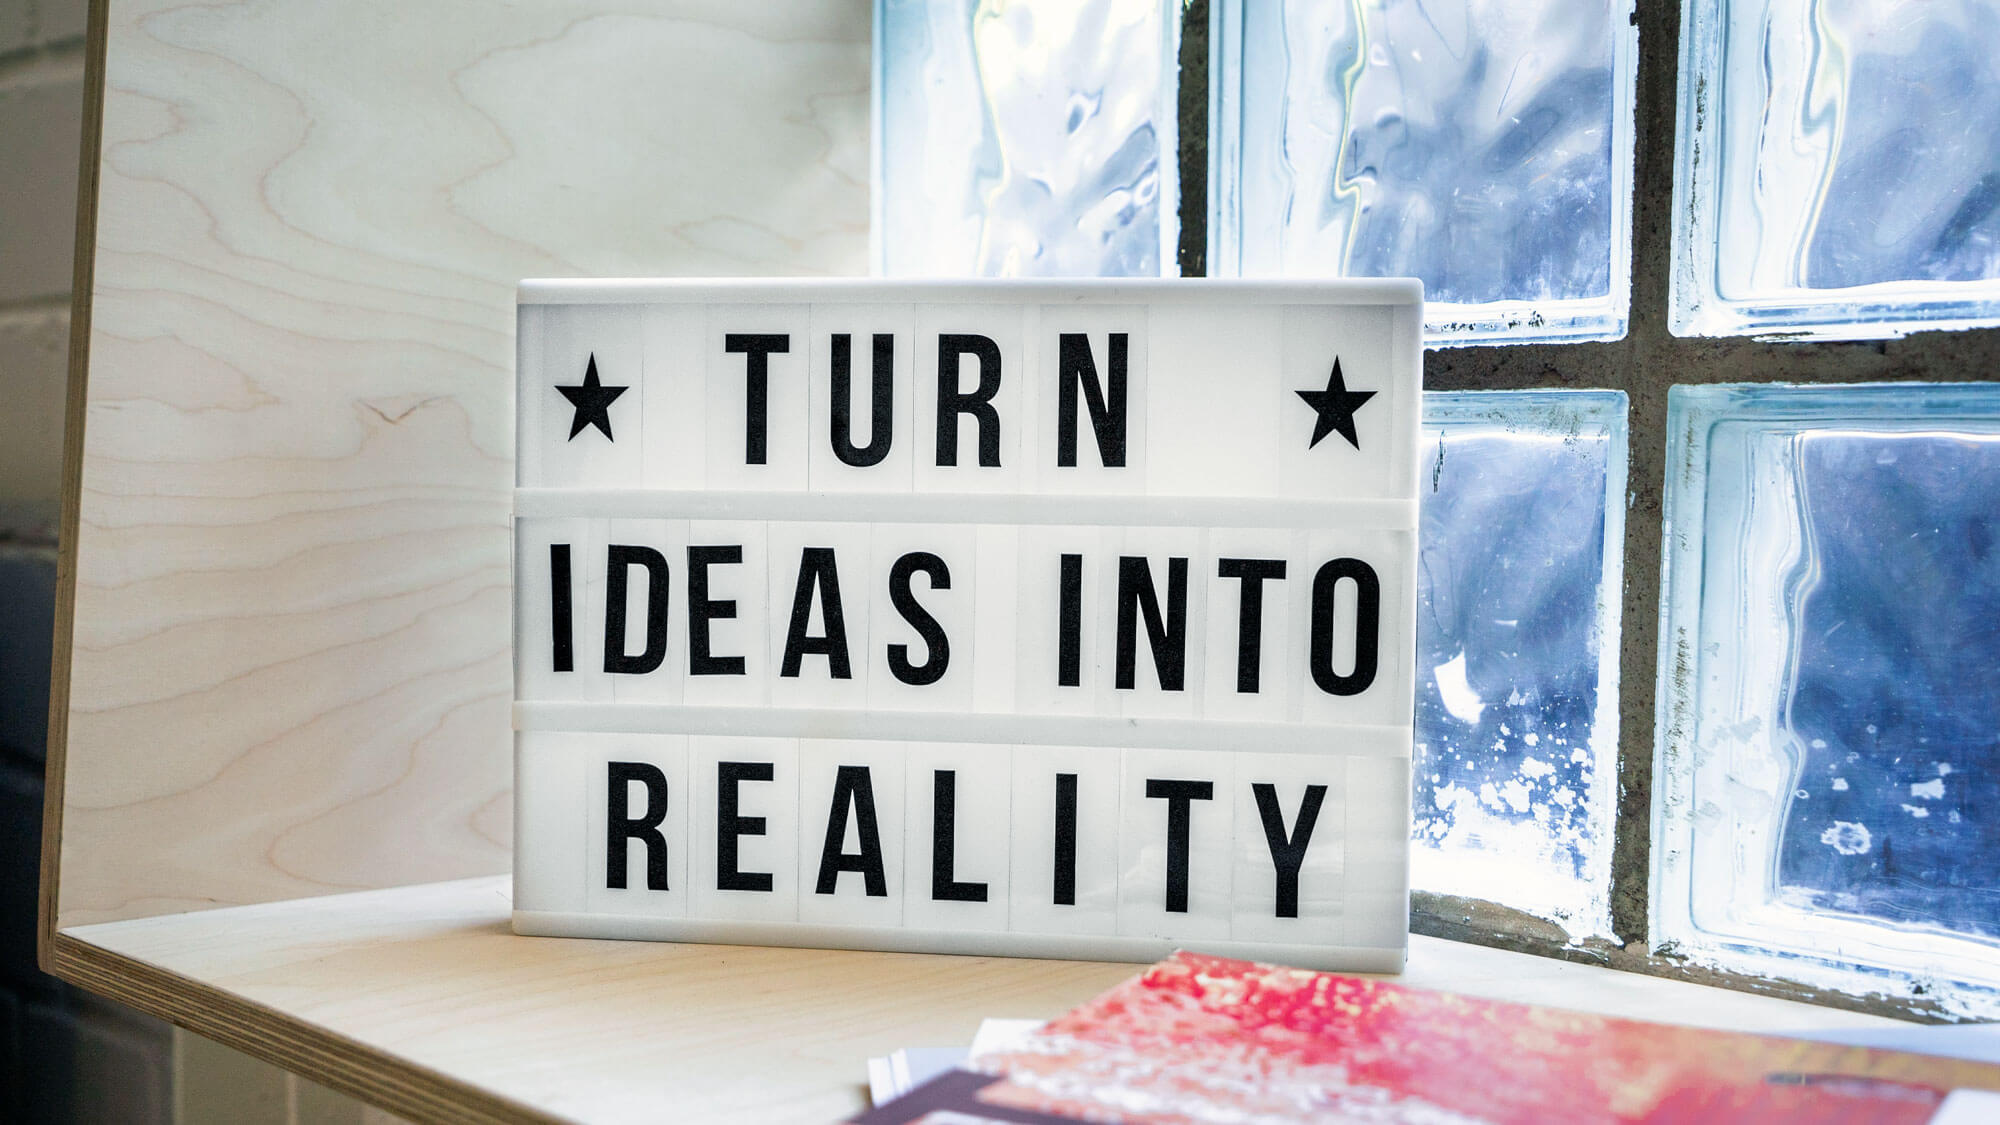 What is innovation? We define it as basically anything new that your turn into a reality